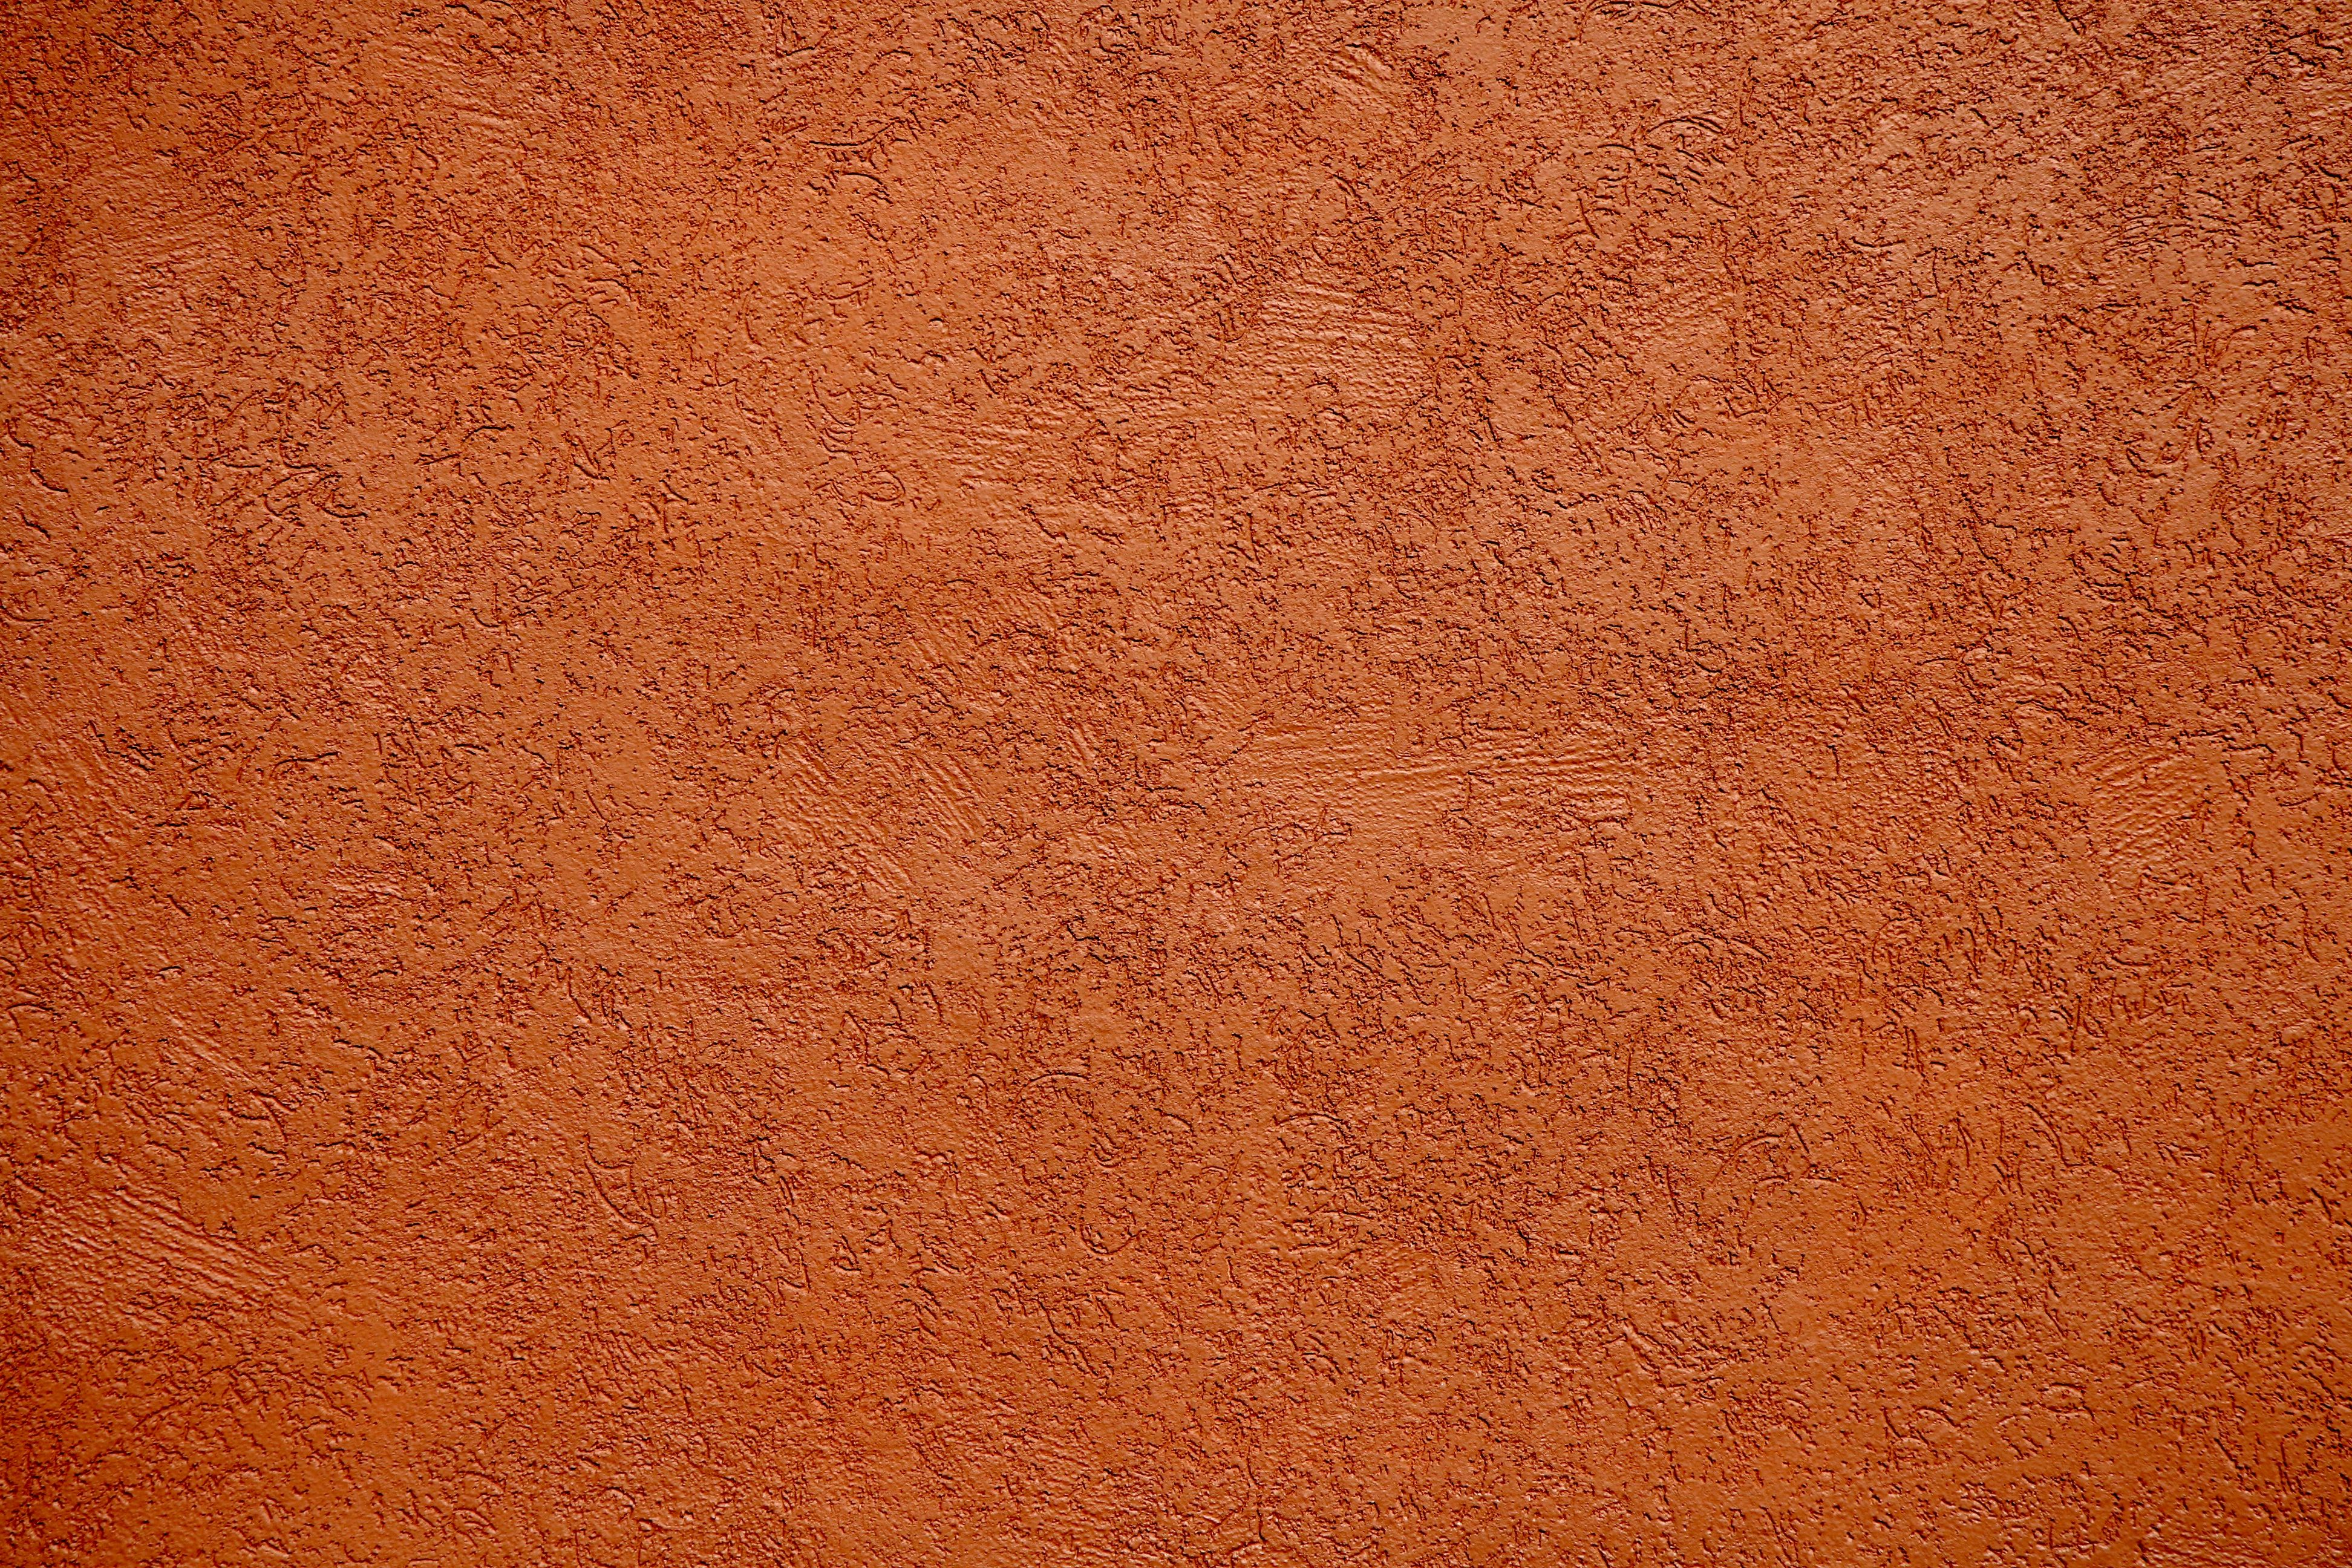 Free Photo Wall Texture Brown Rough Surface Free